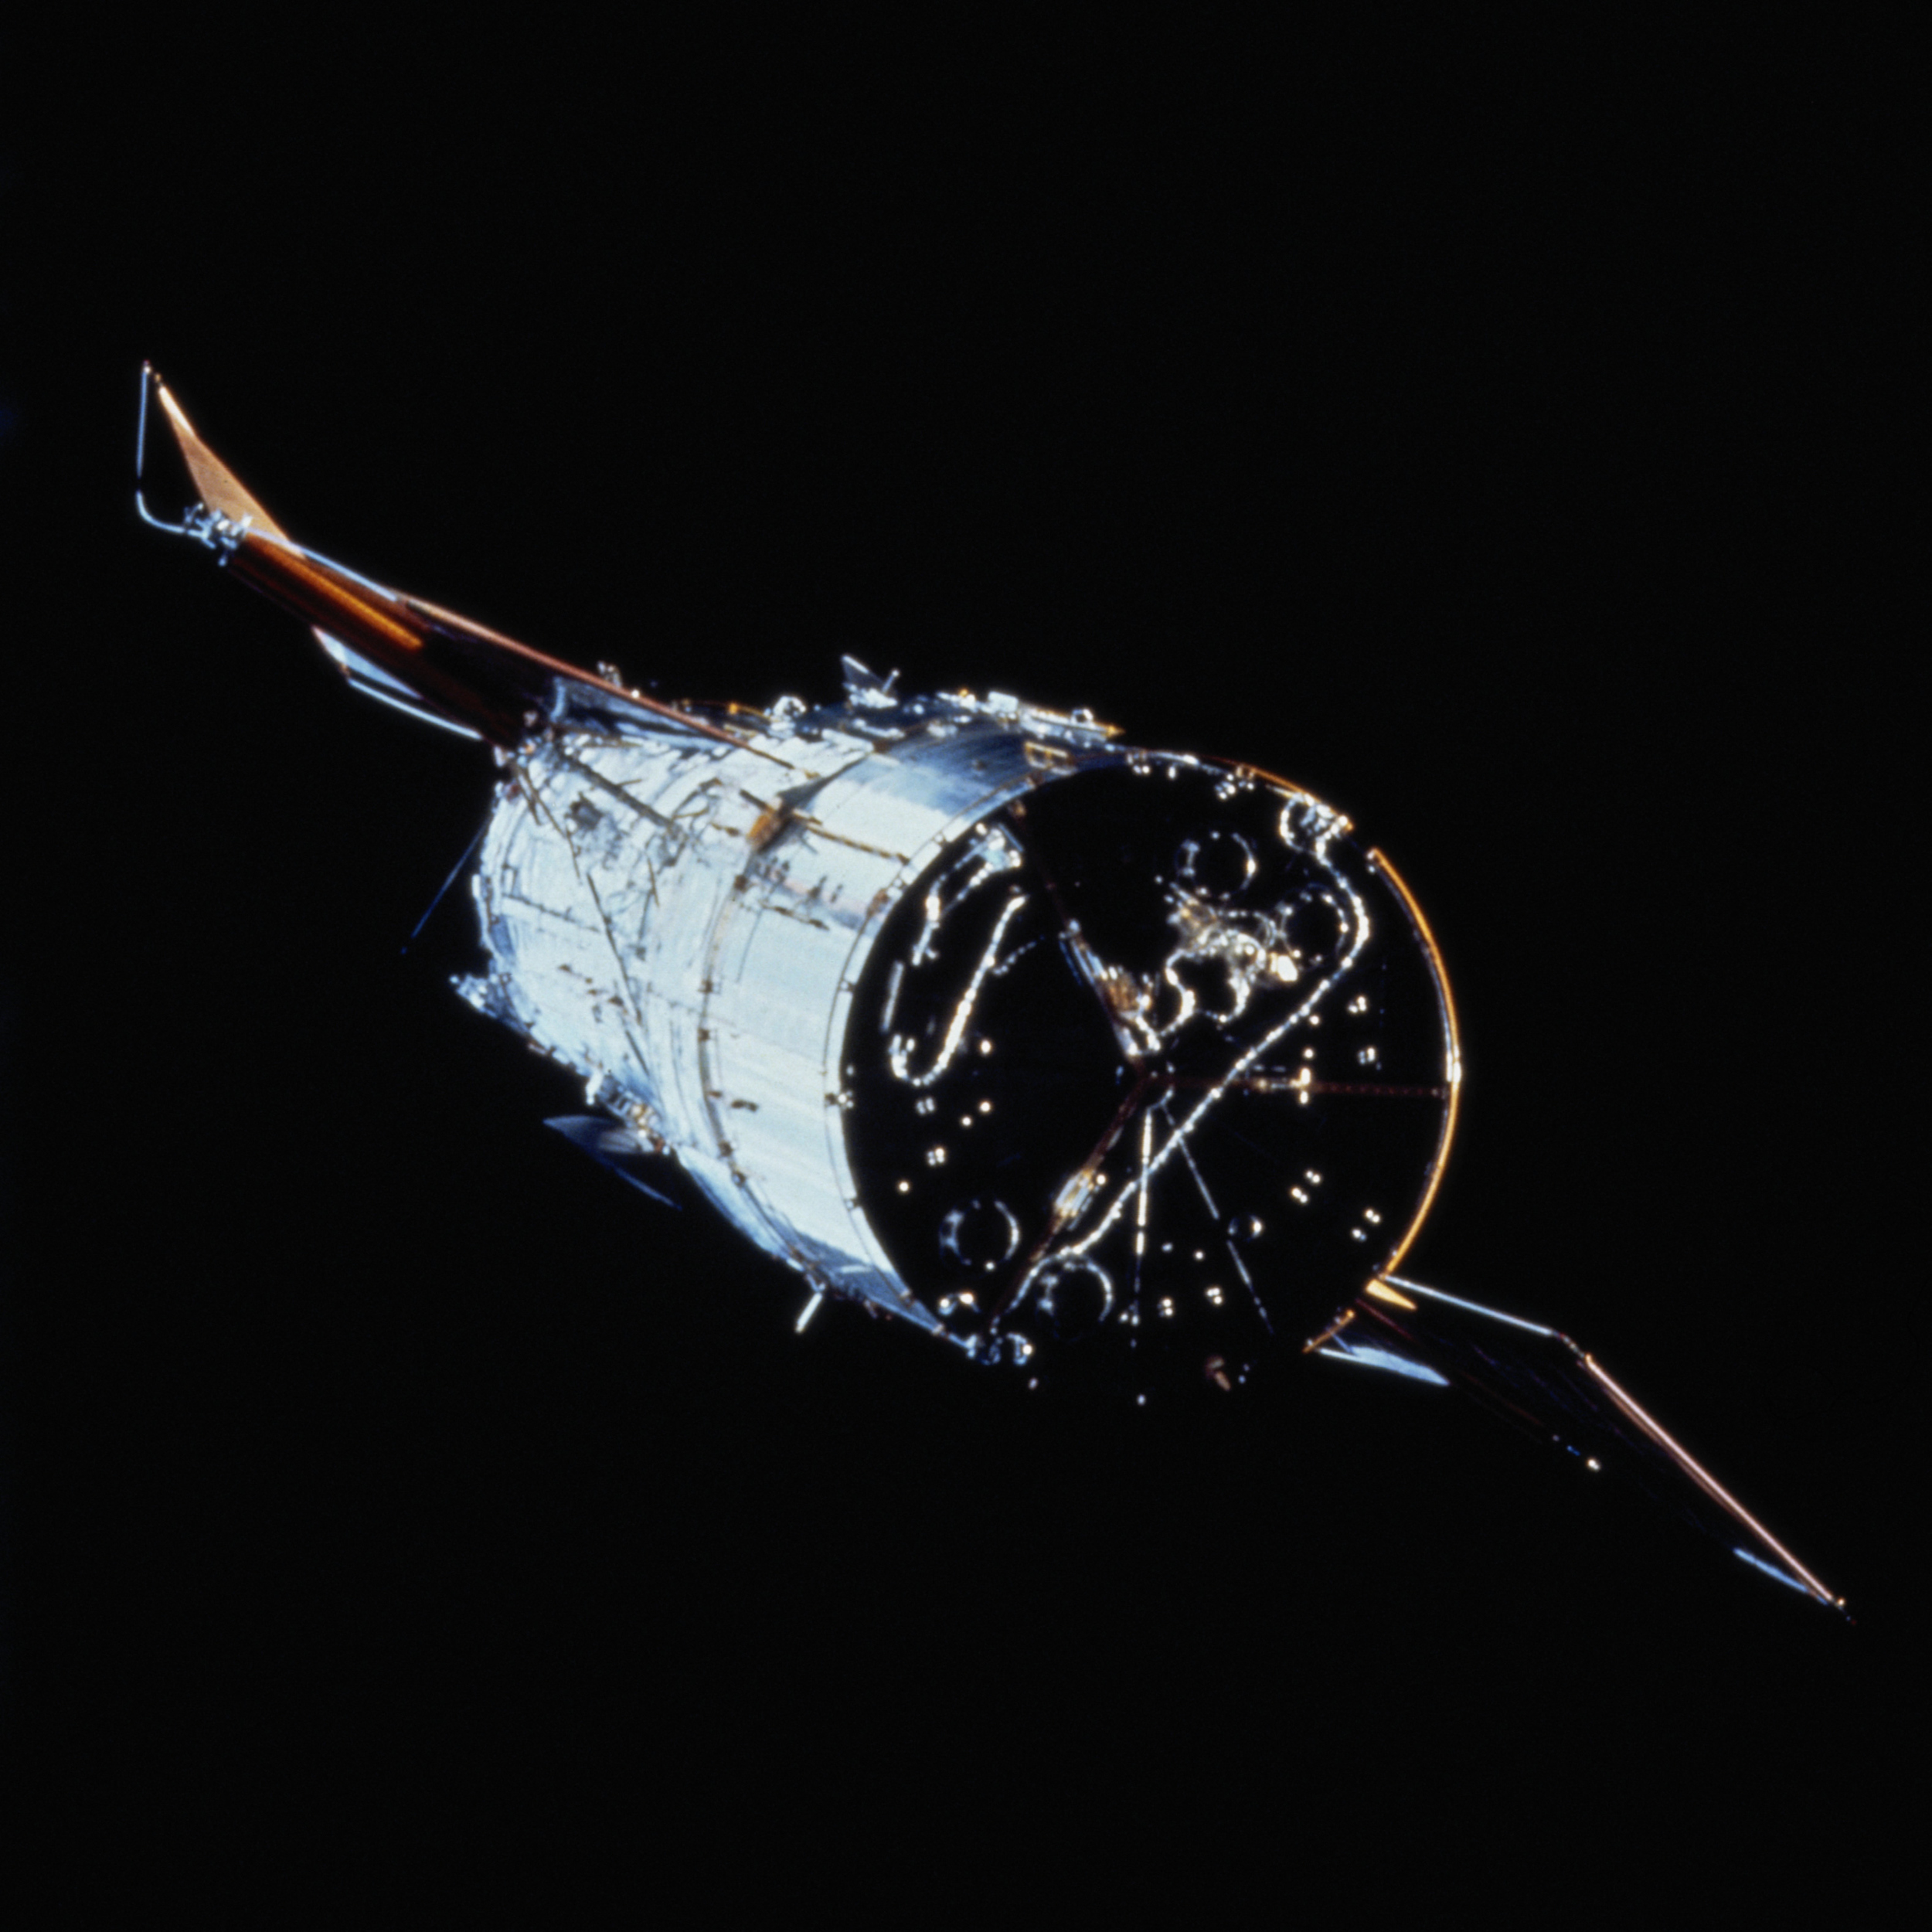 hubble telescope article - photo #20